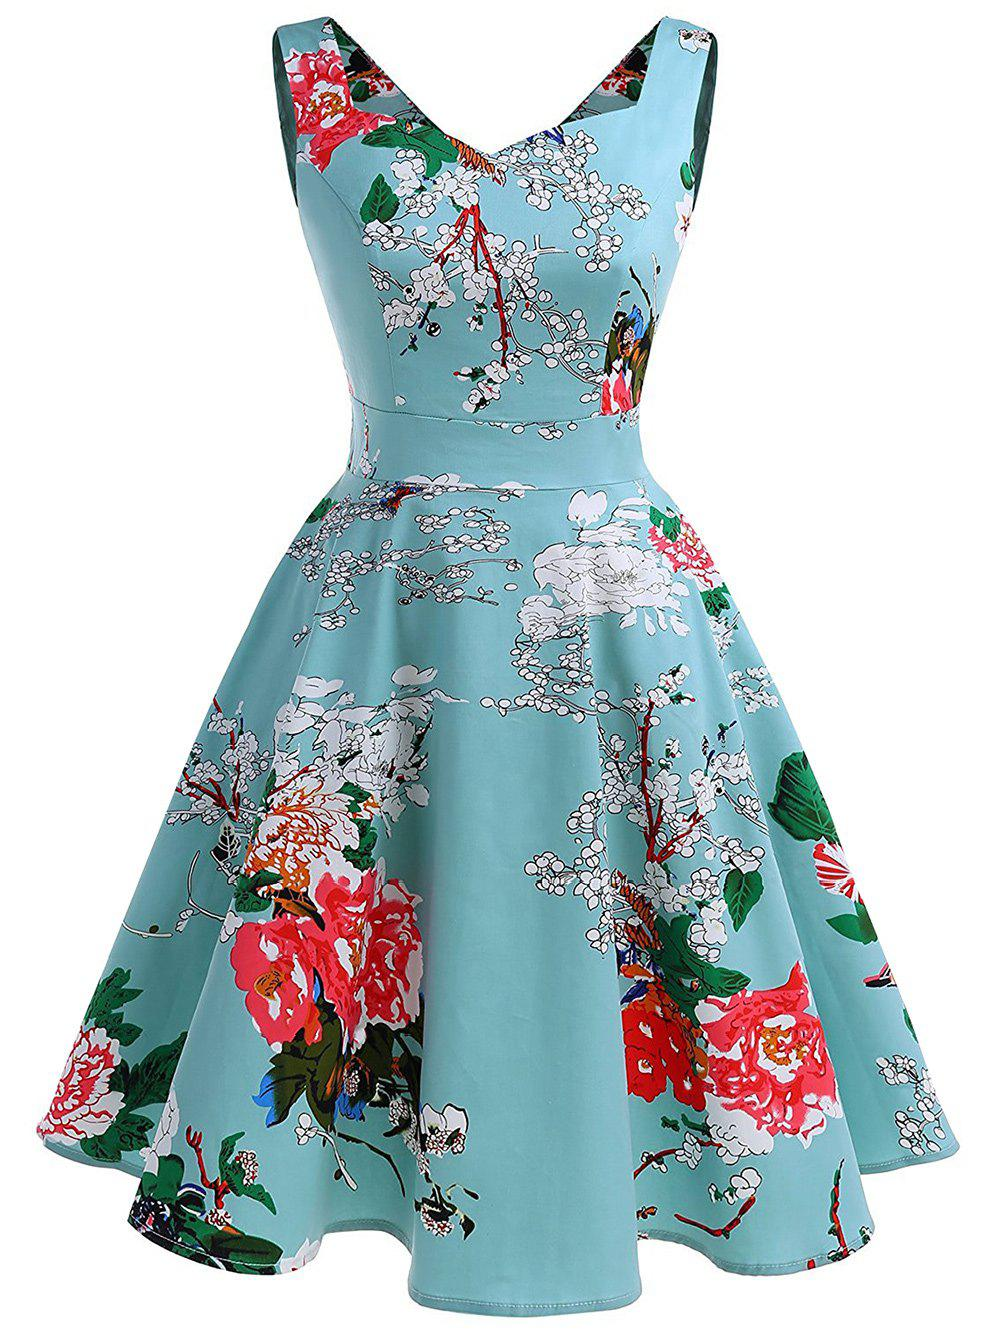 Chic Sweetheart Neck Floral Print A Line Dress